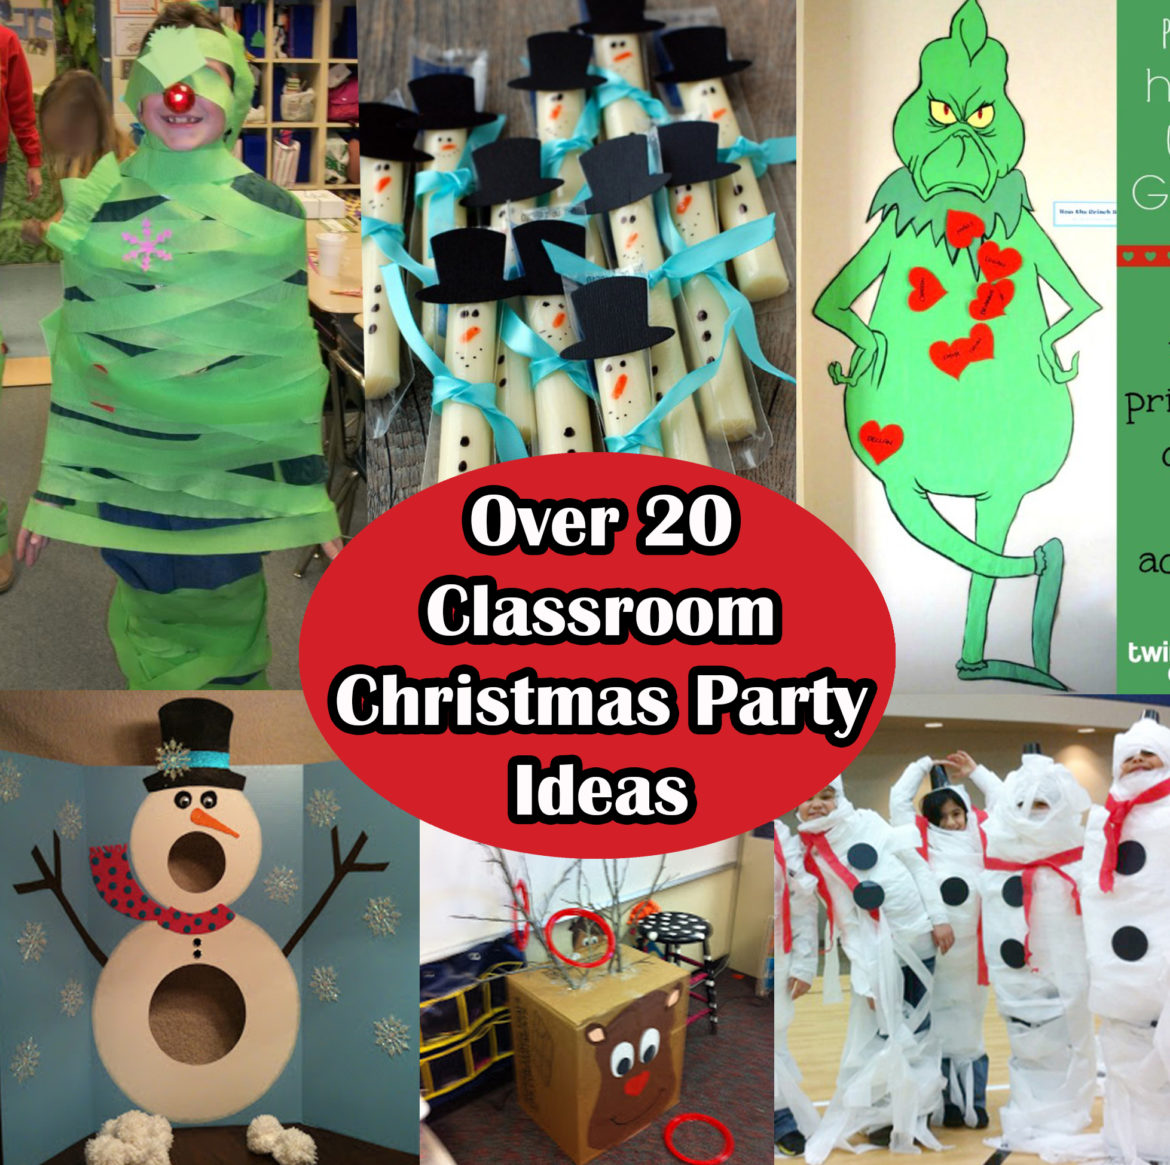 over-20-classroom-christmas-party-ideas-sq